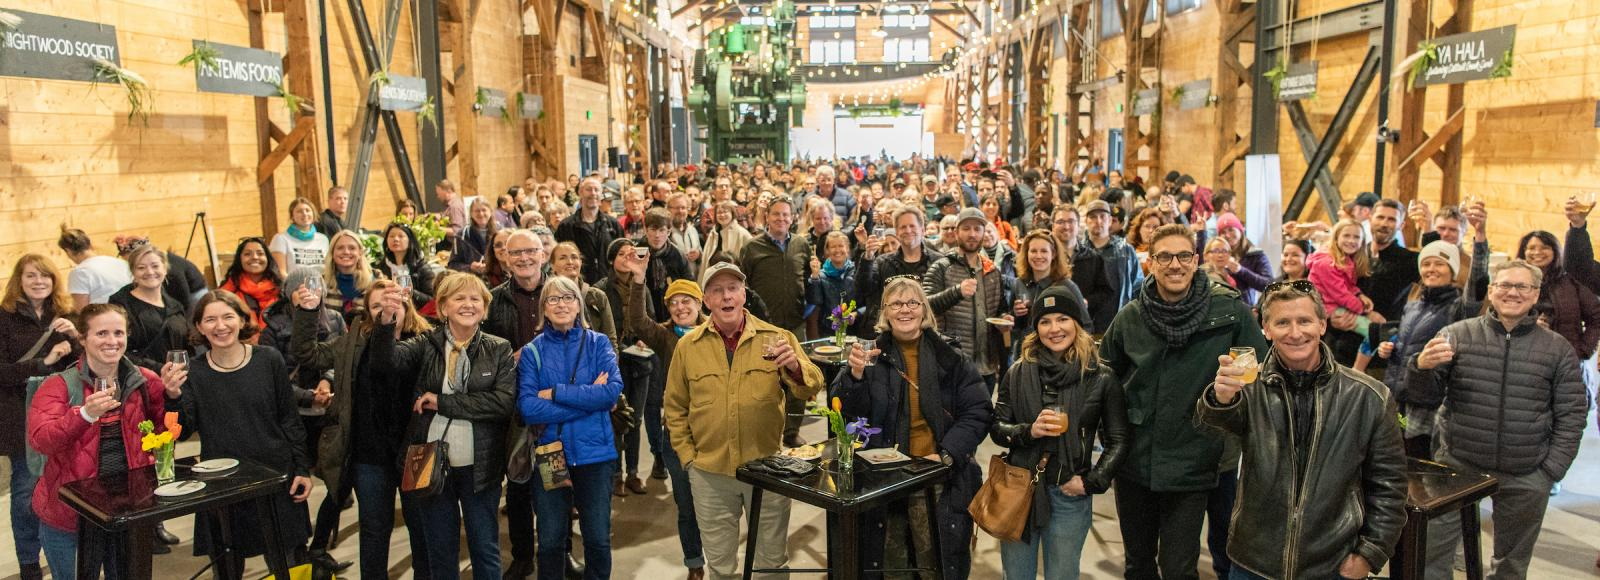 A large group of people raising their glasses in a toast inside a large warehouse.